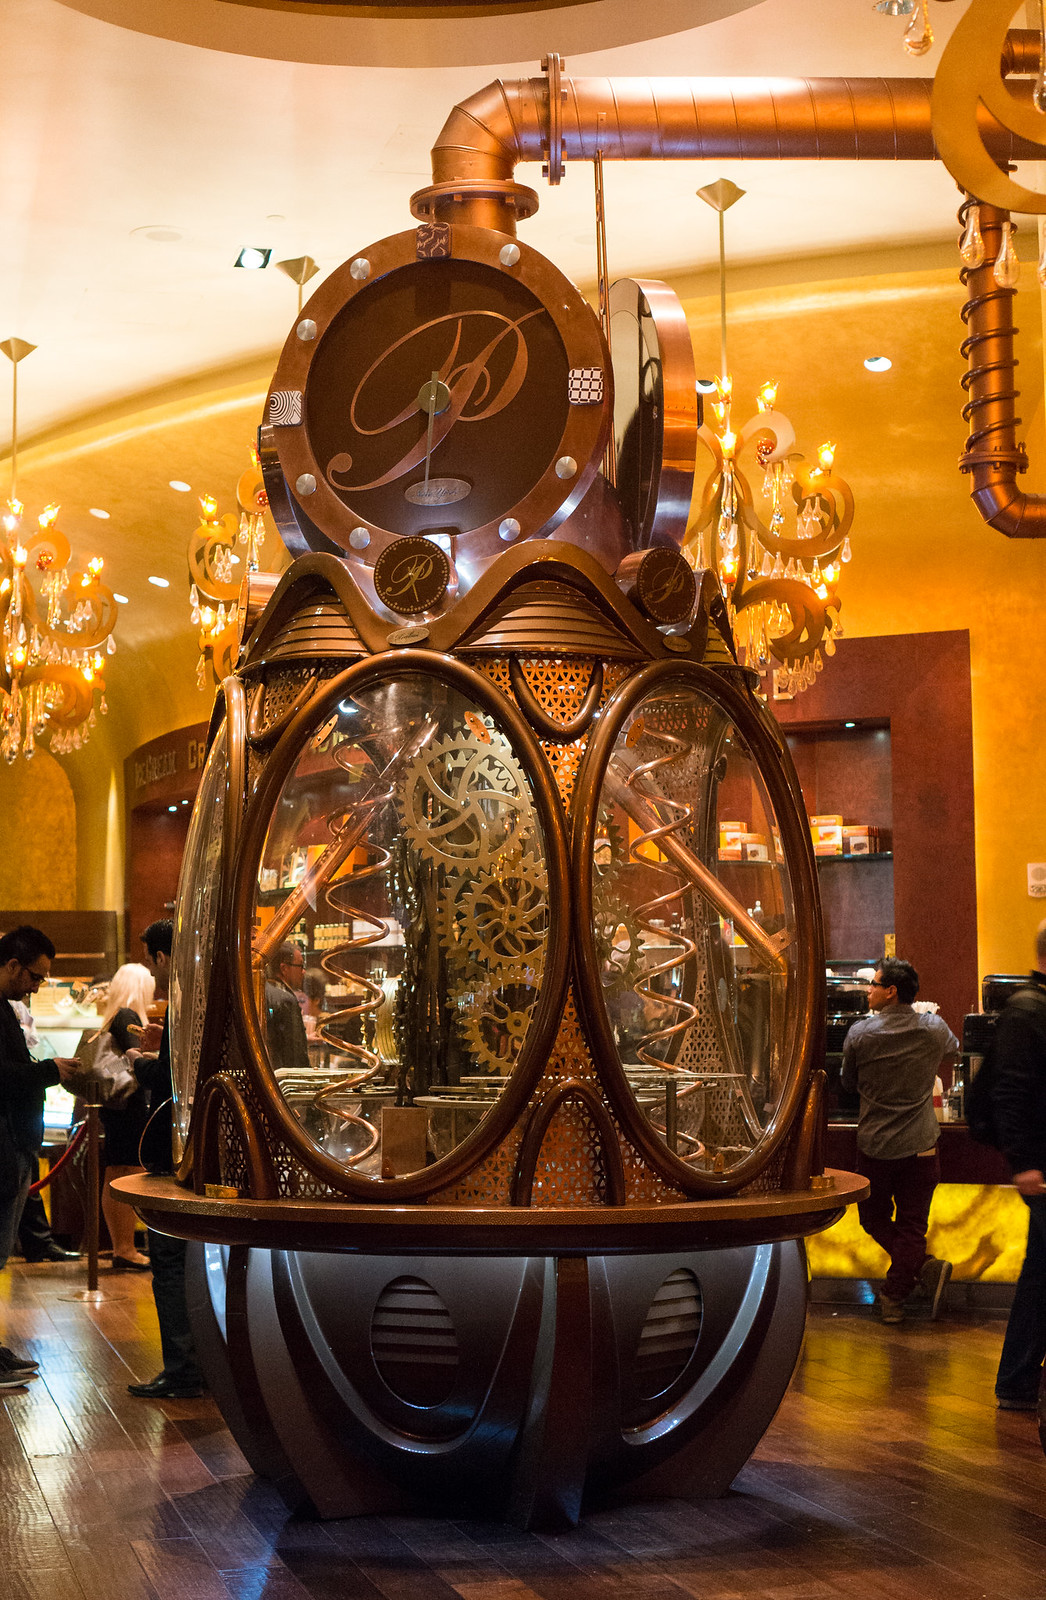 Payard Chocolate Clock Payard's Chocolate Clock